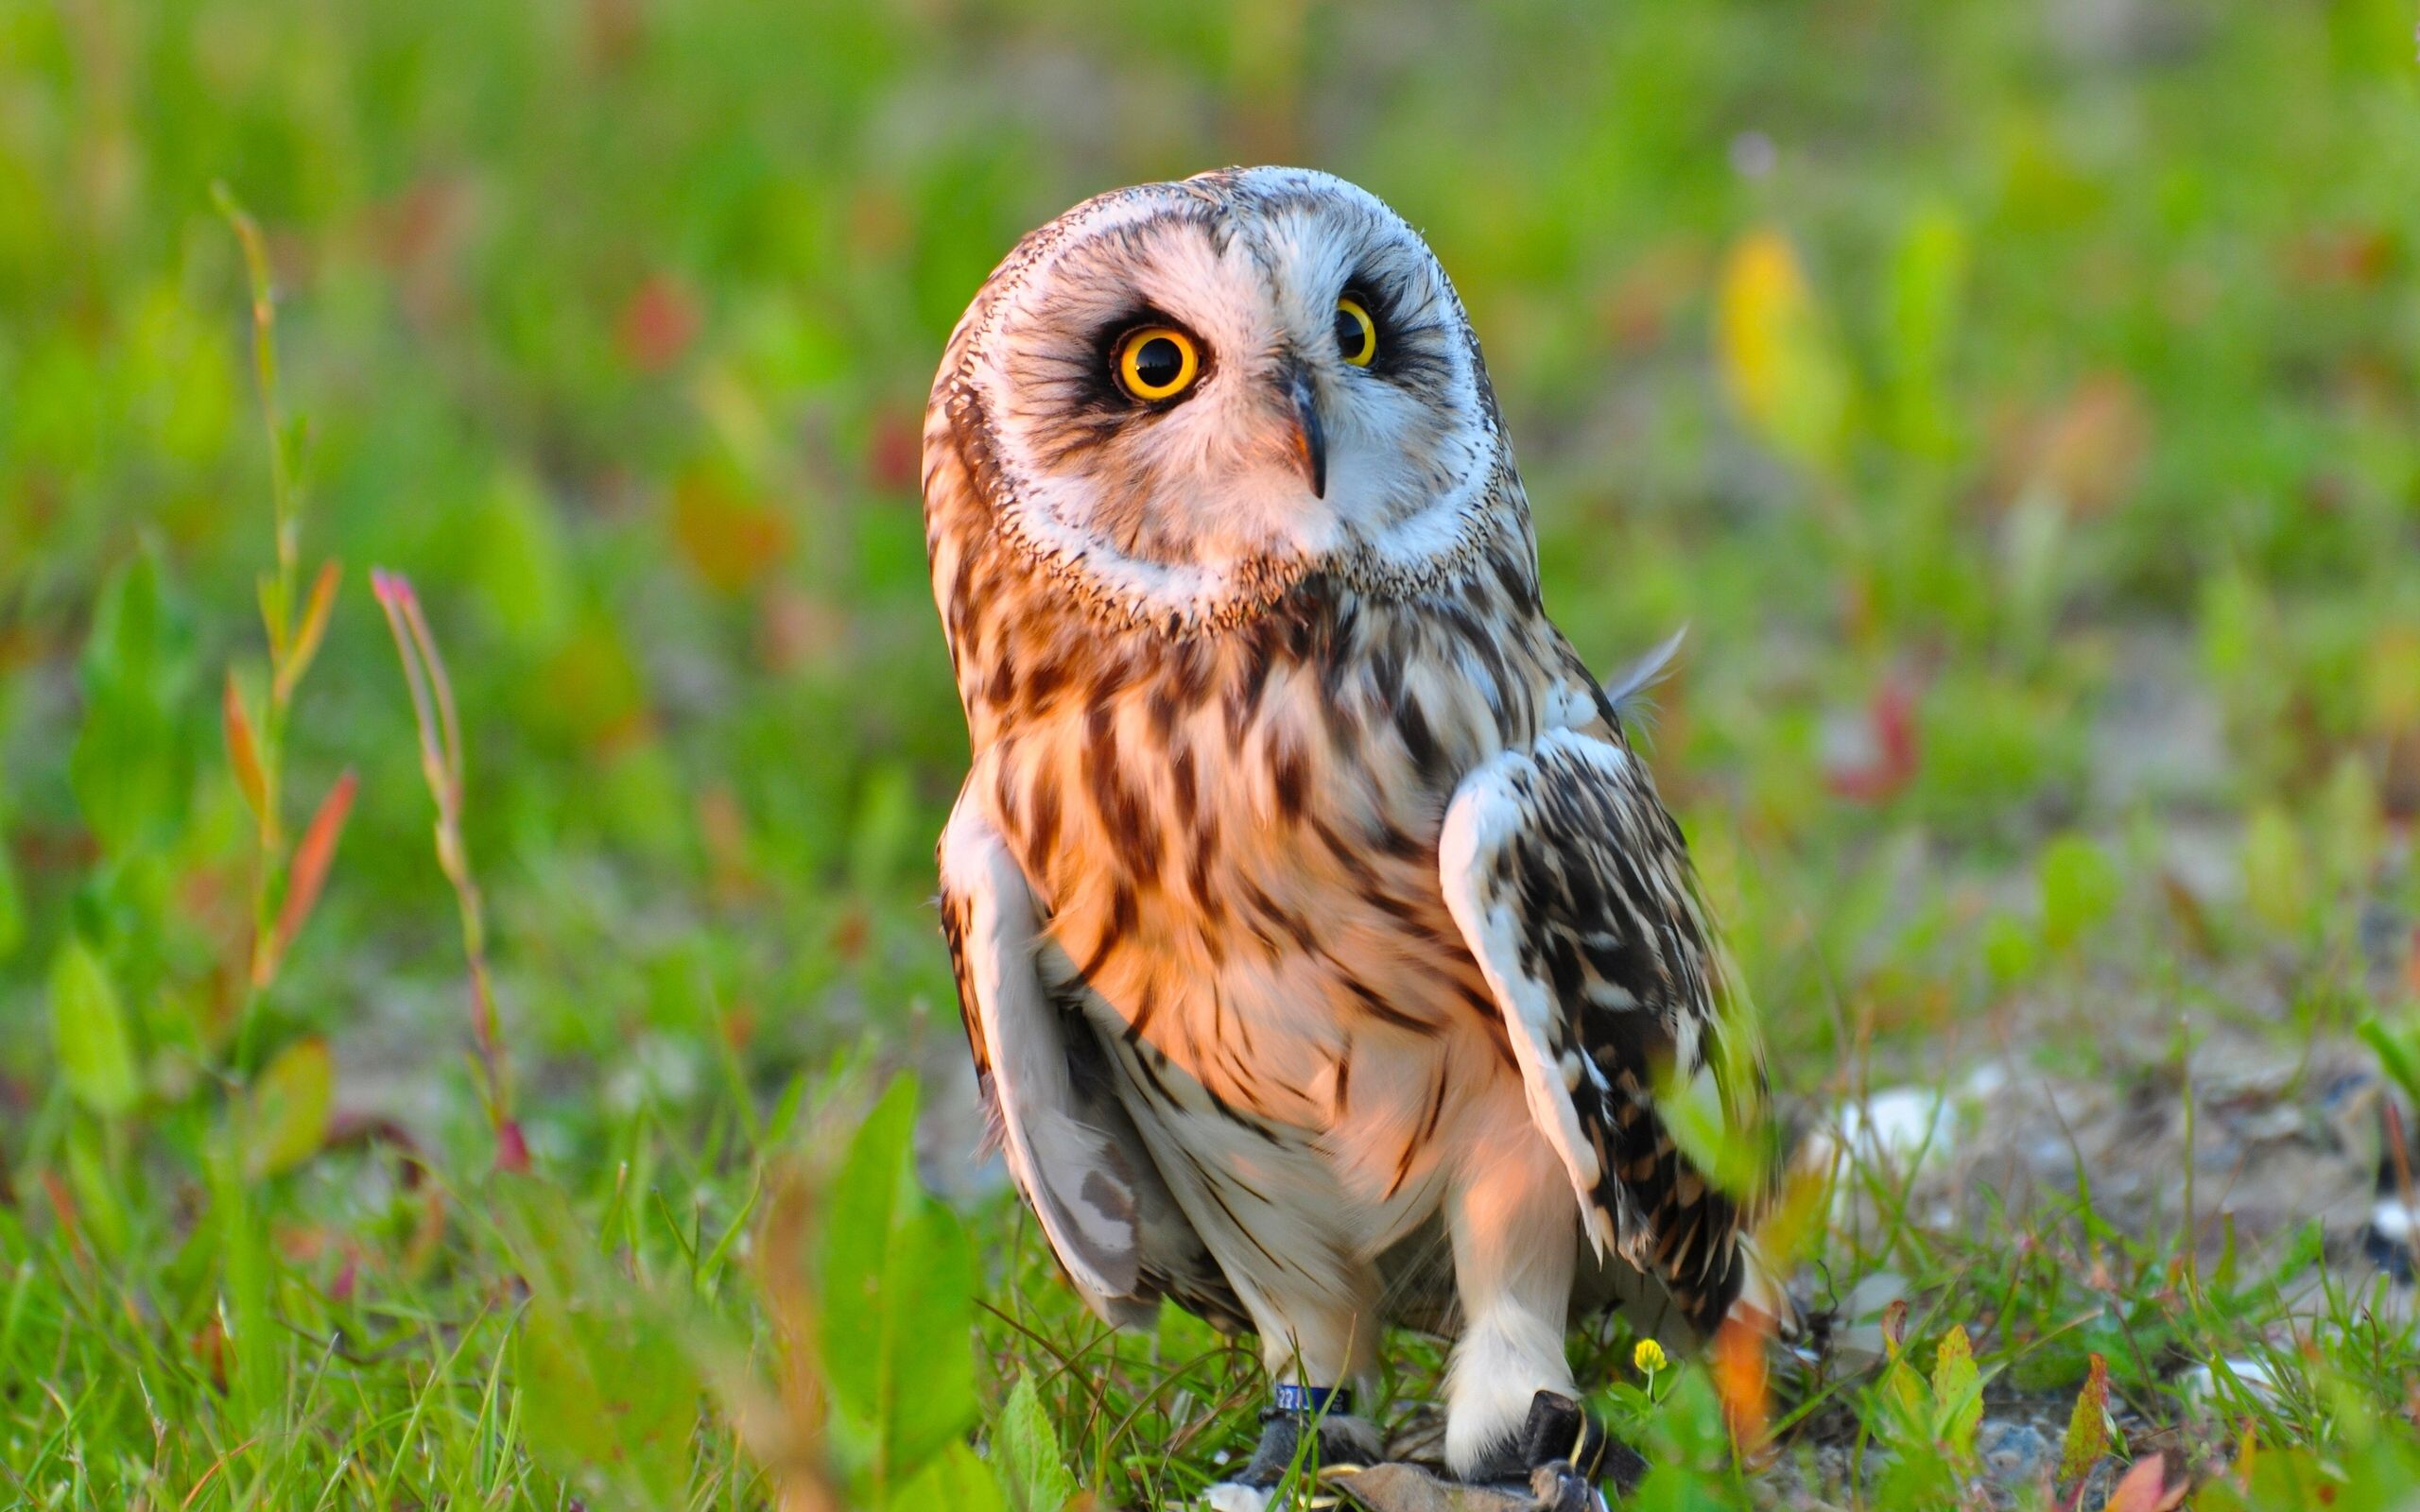 87021 download wallpaper Animals, Owl, Bird, Predator, Grass screensavers and pictures for free